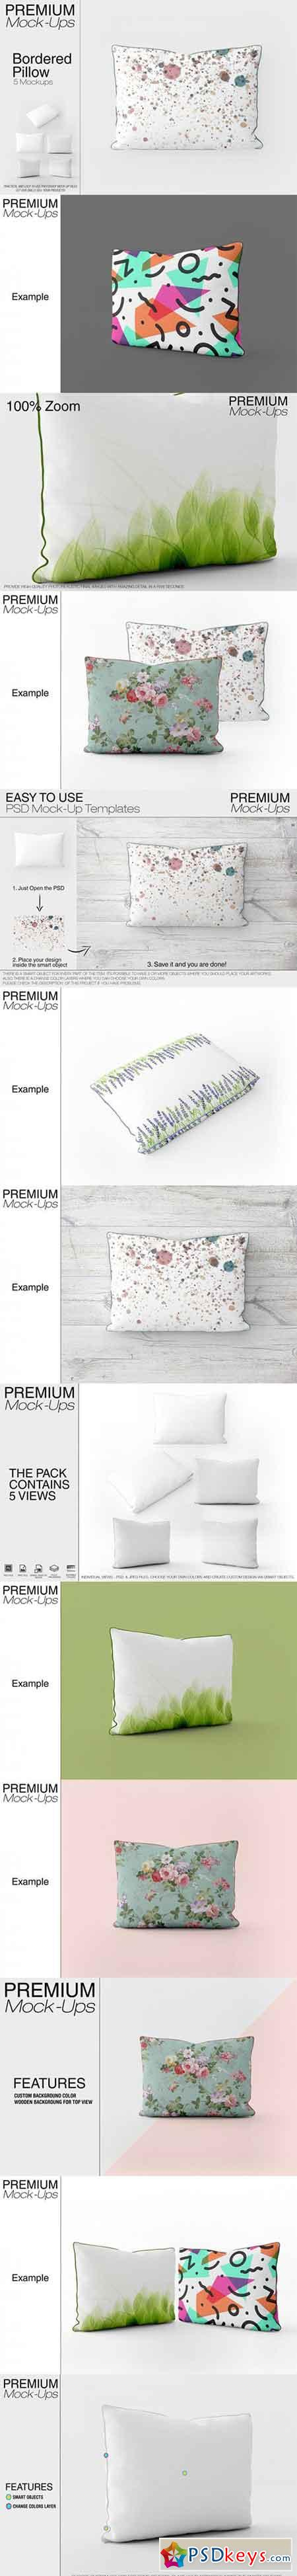 Bordered Pillow Mockup Pack 3451122